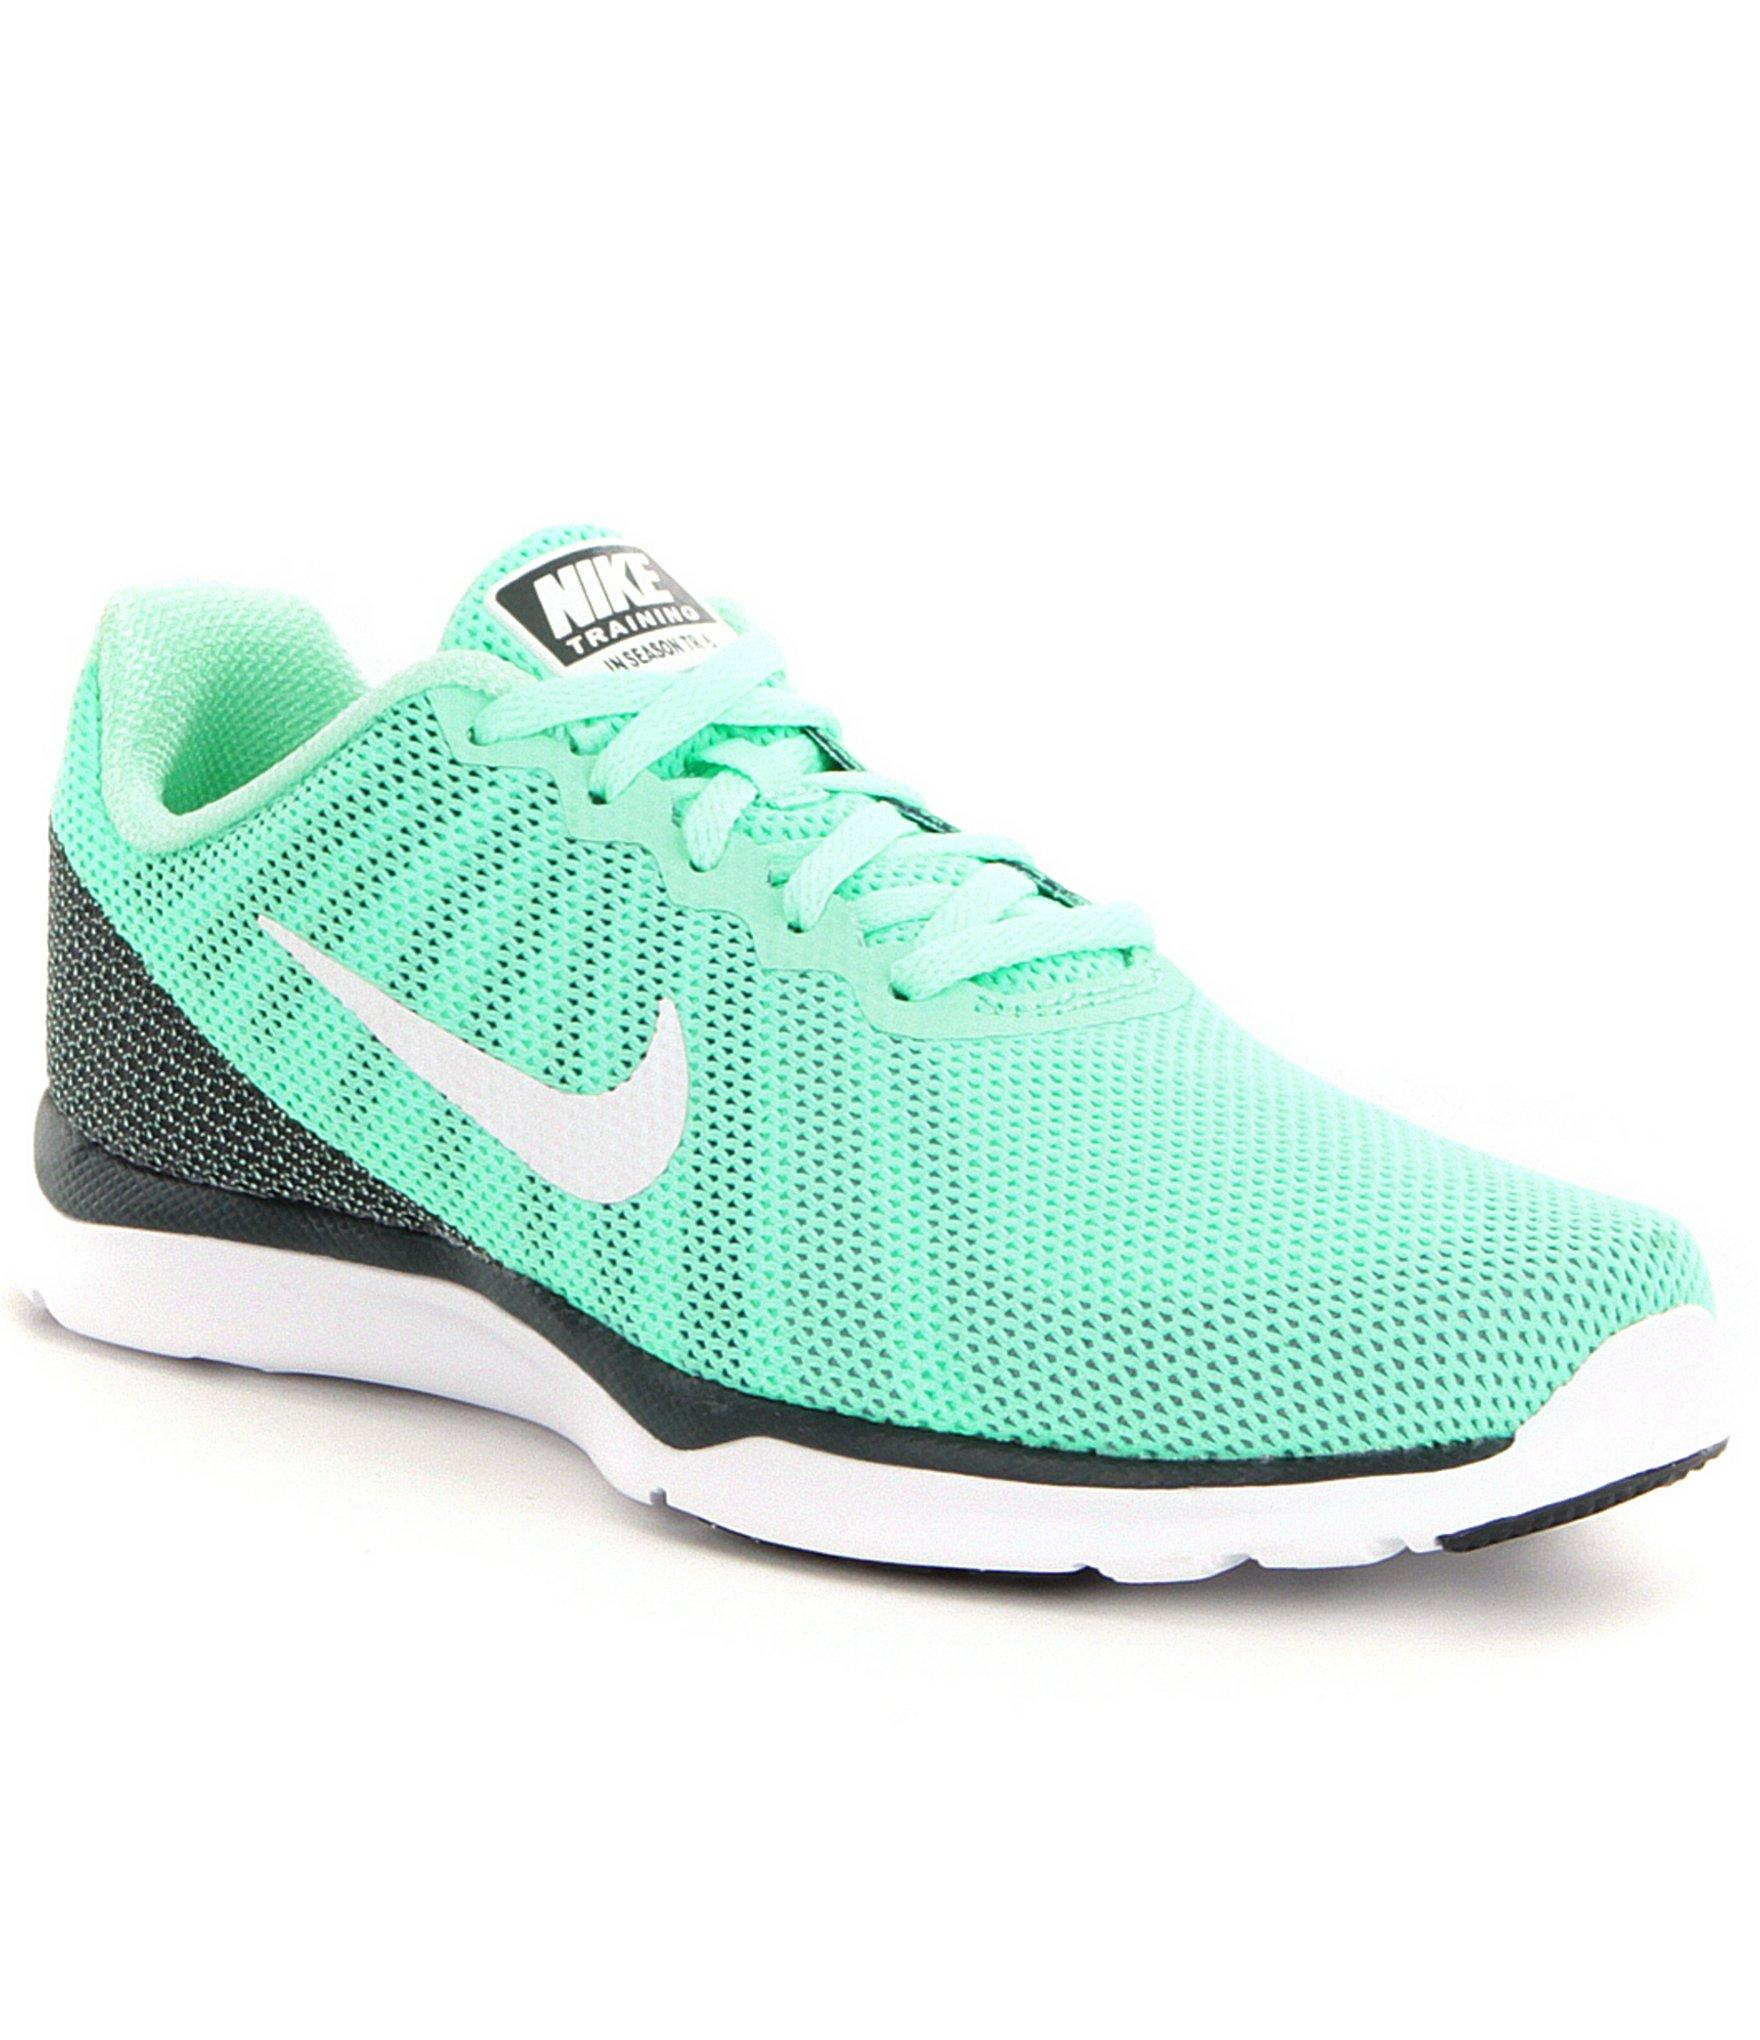 9c010696bf745 Lyst - Nike Women ́s In-season Tr 6 Training Shoes in Green